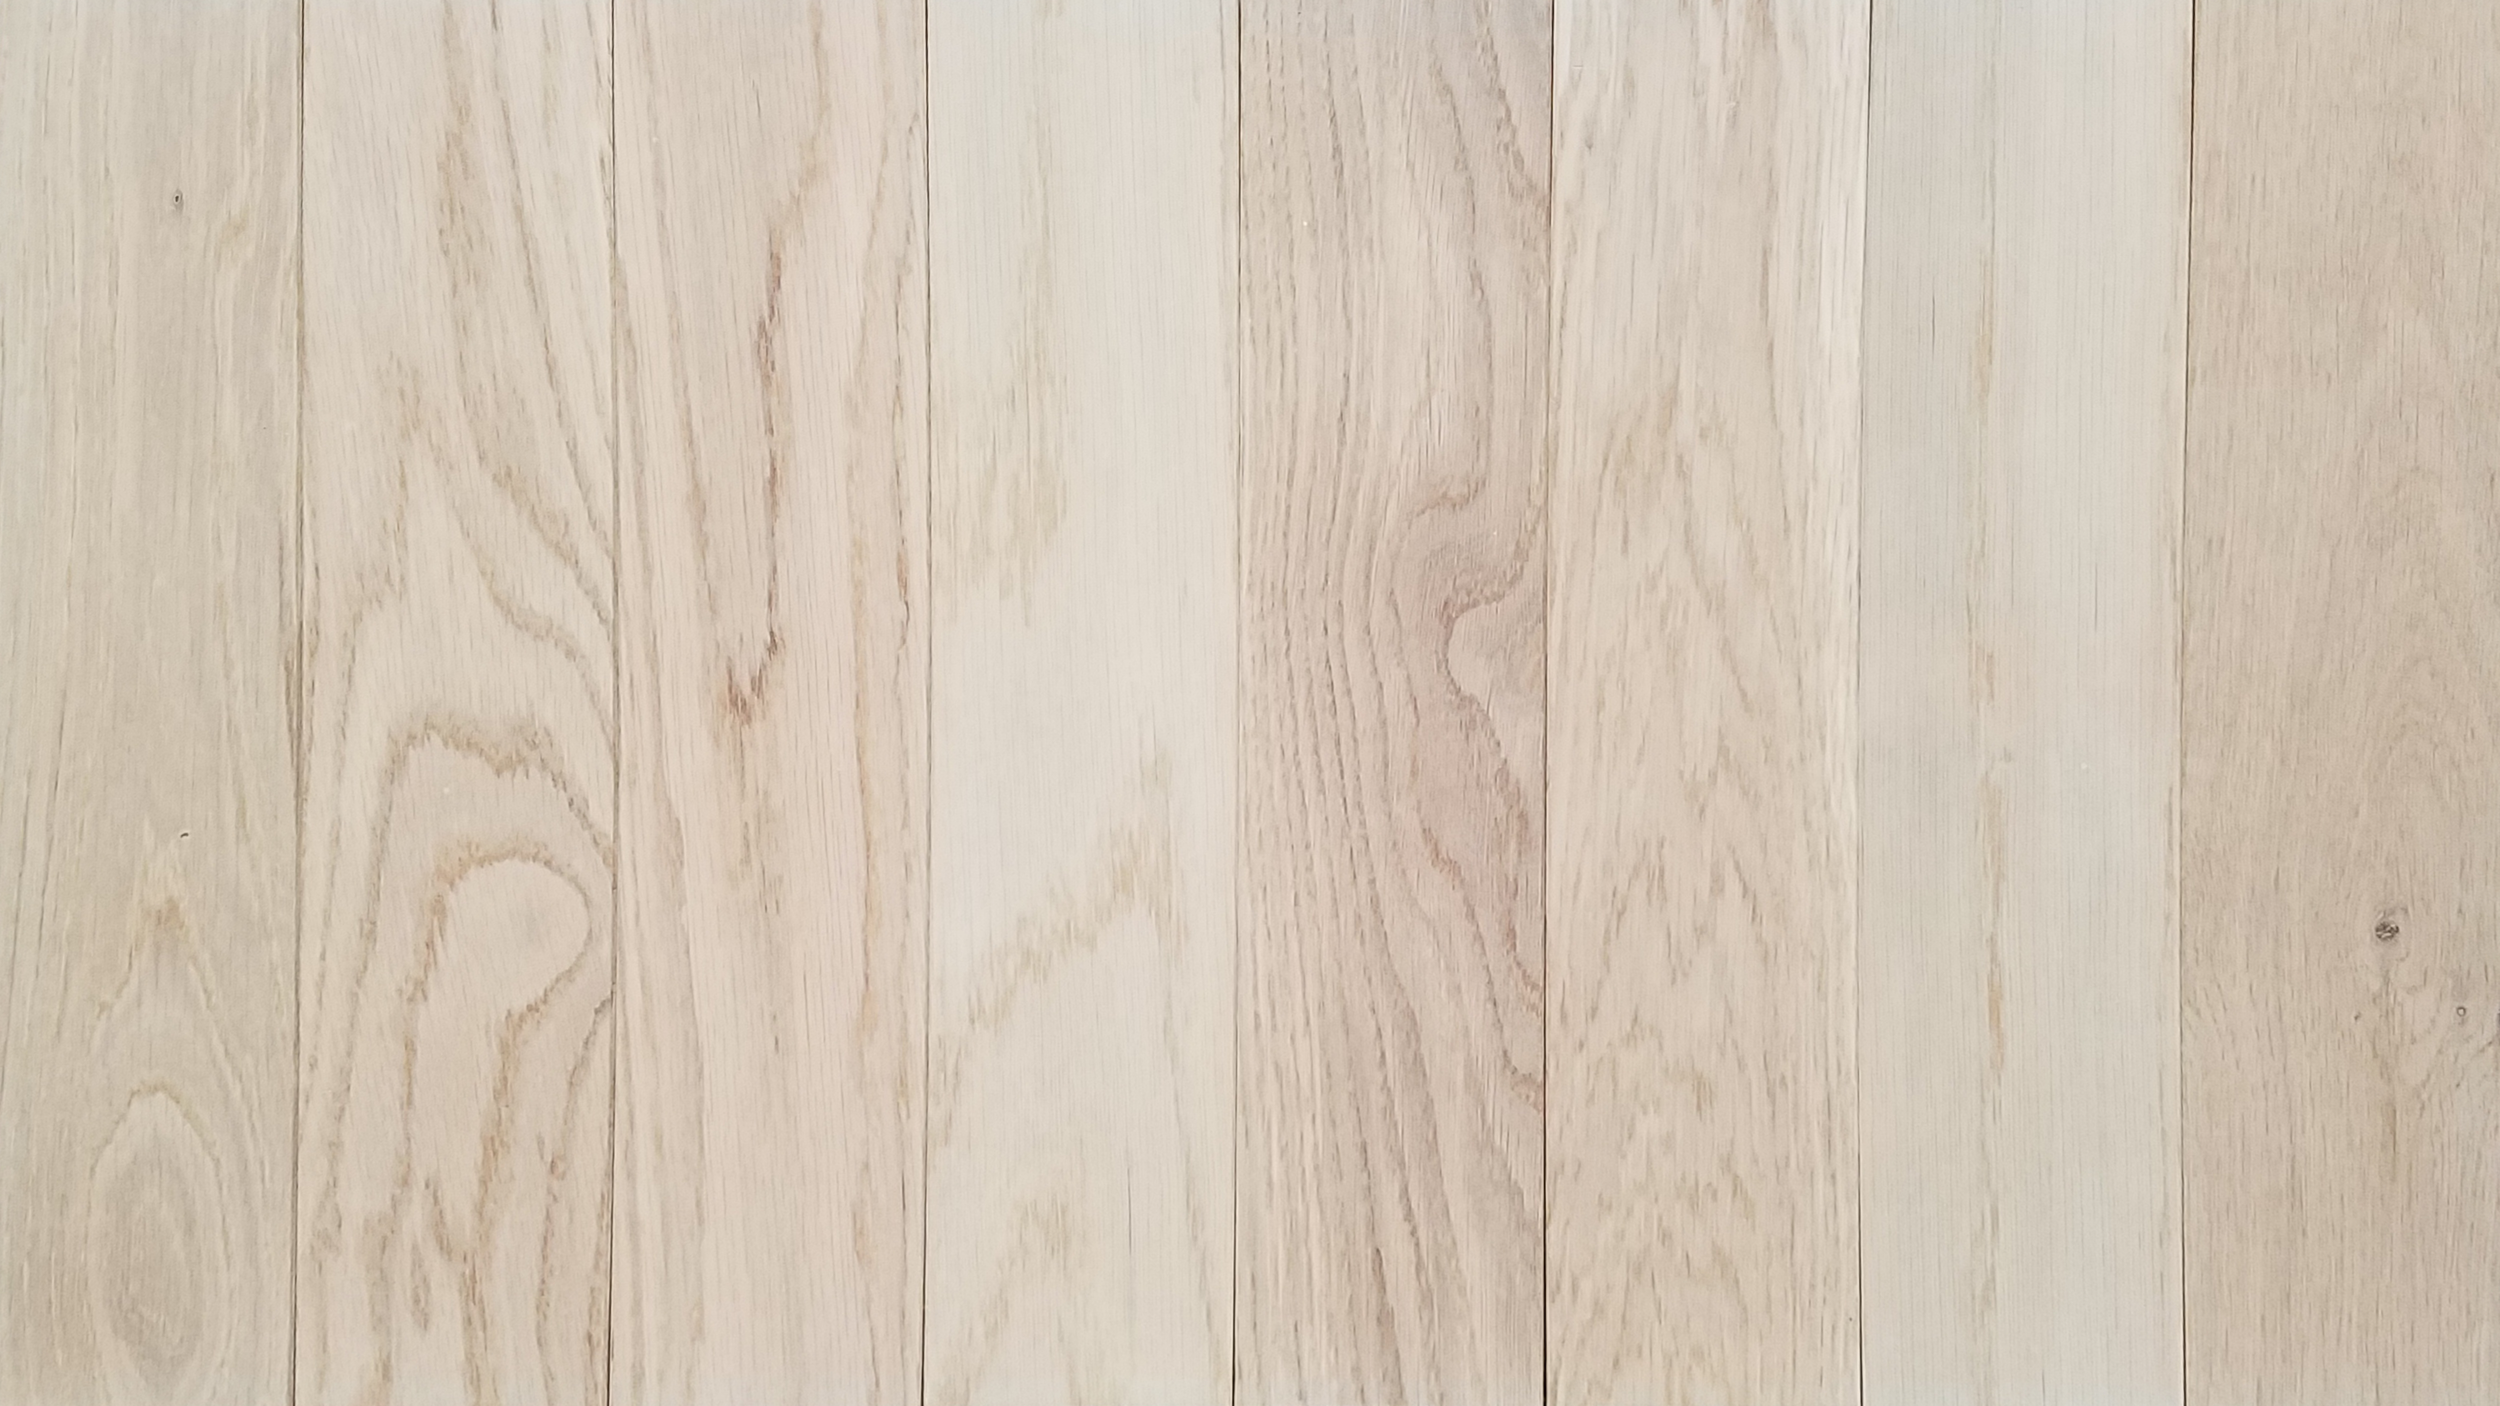 PN#6226 White Oak Herringbone